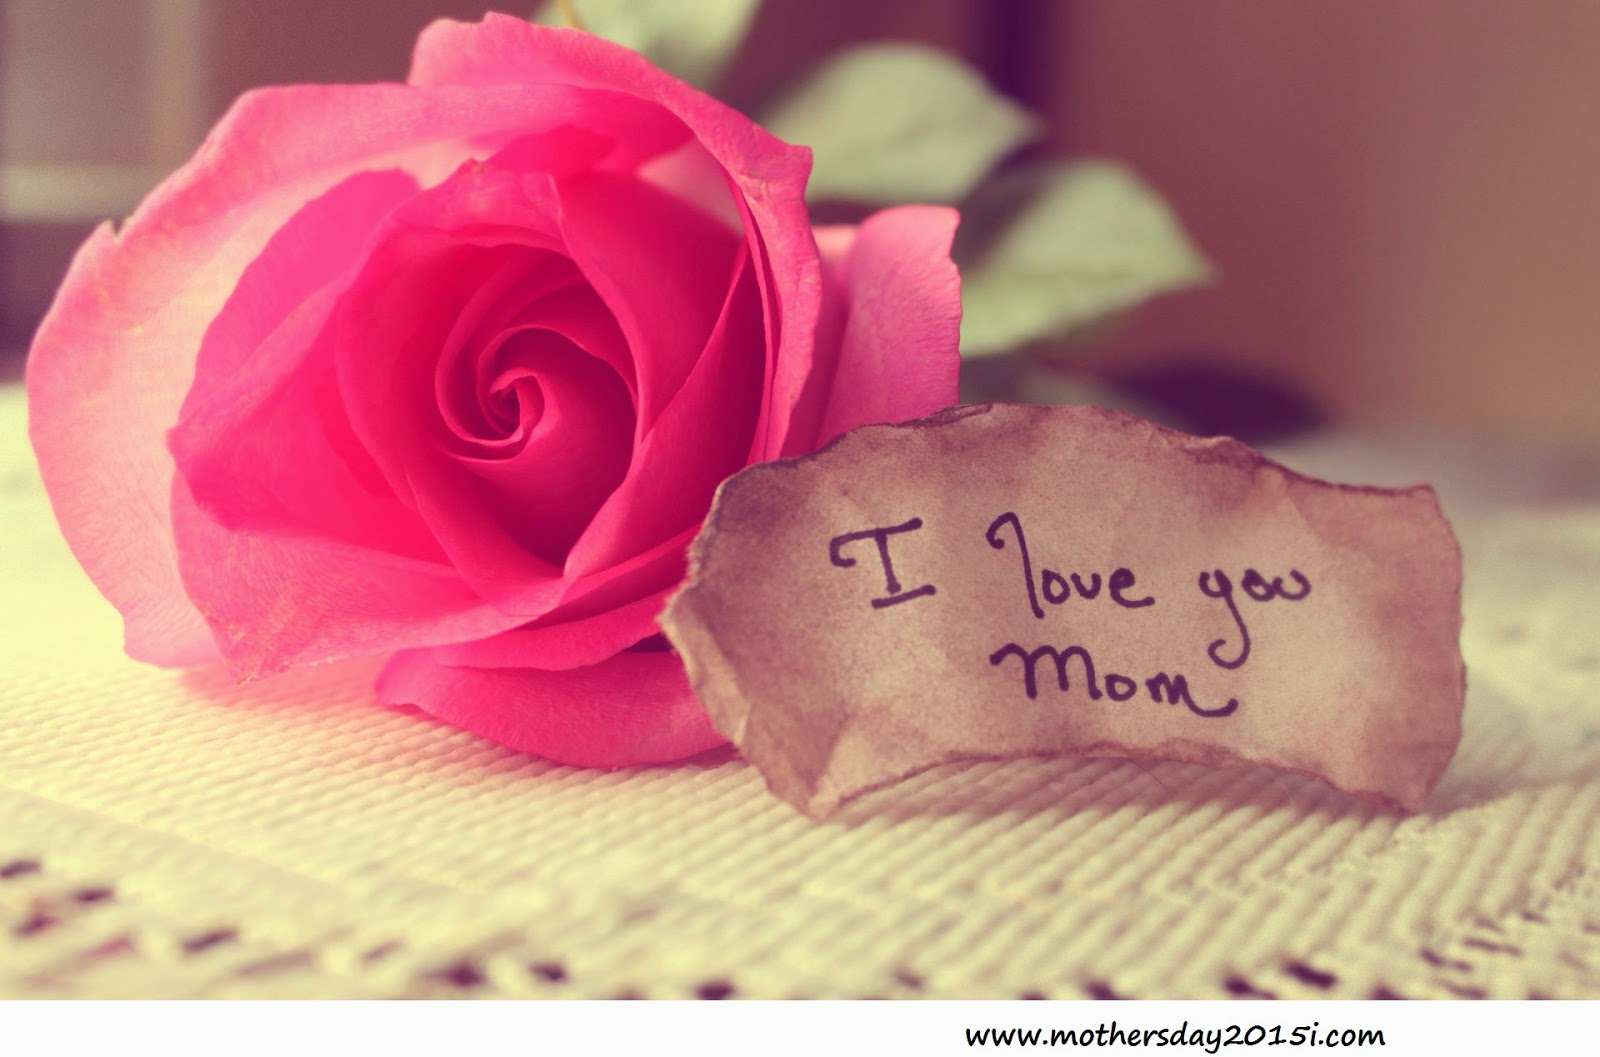 Happy Mother's Day Quotes With Images For Facebook 2015